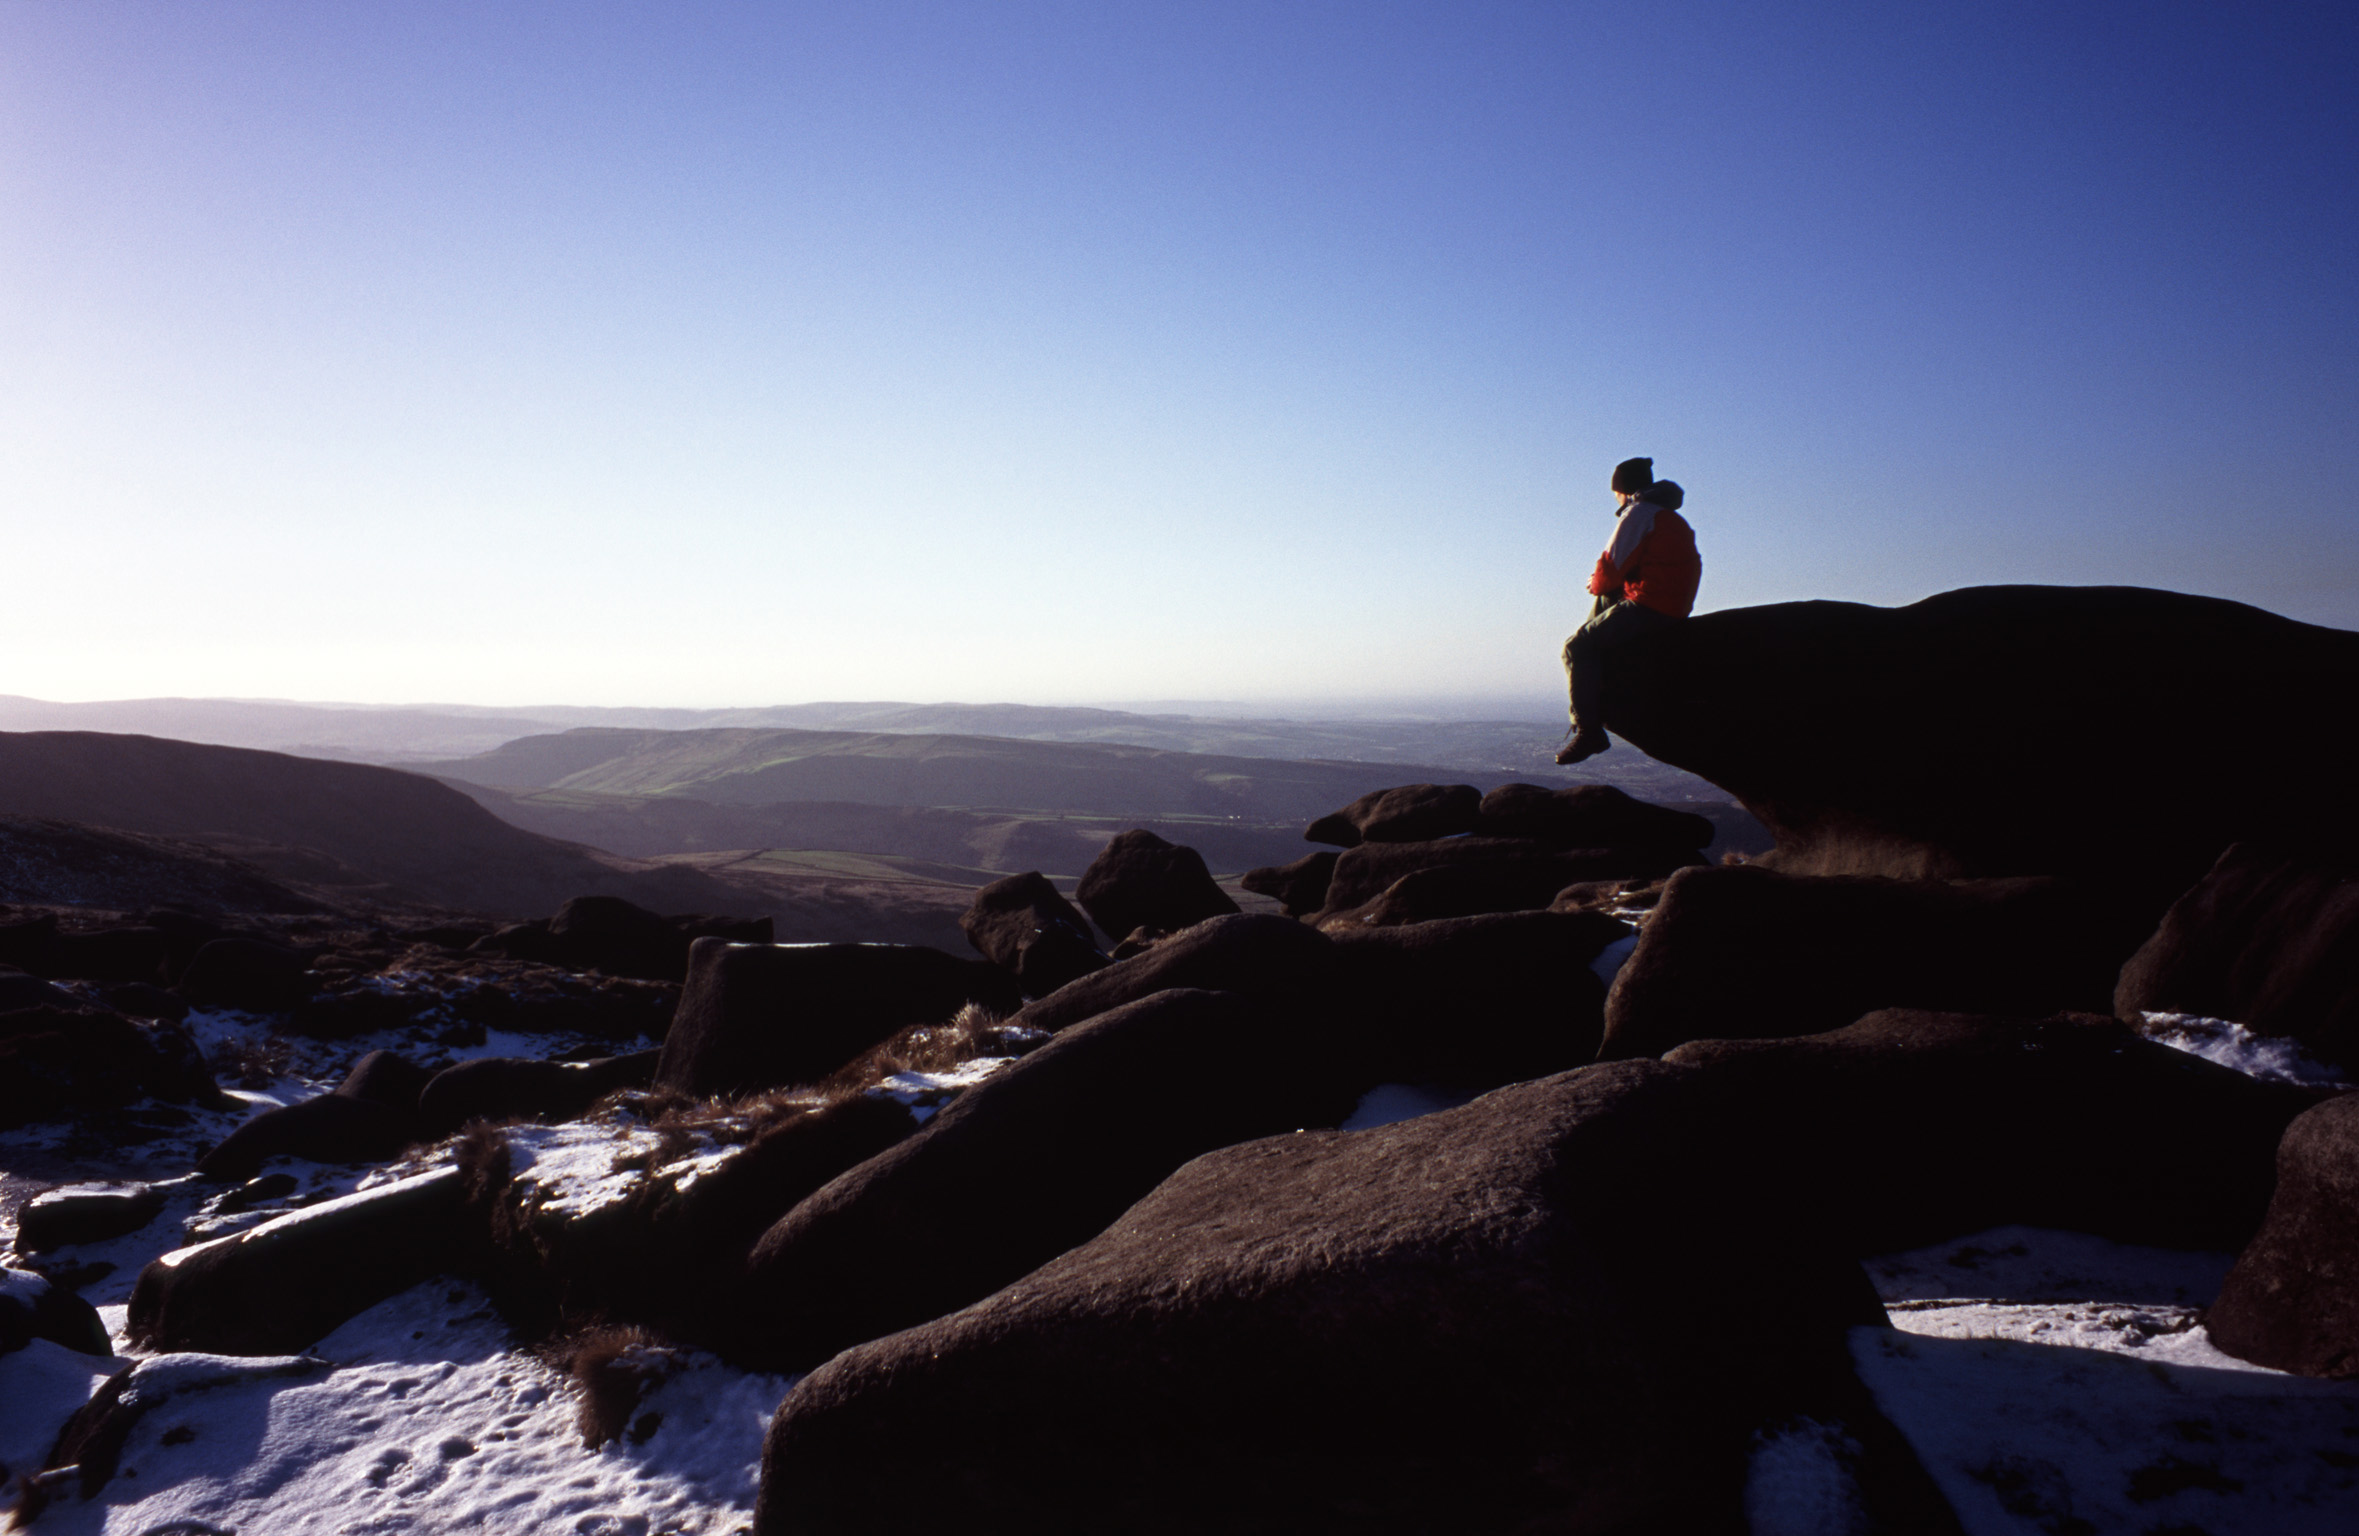 Person enjoying the tranquility of nature sitting on a rock on a snowy winter Kinder Scout, a moorland plateau and National Nature Reserve in the Dark Peak of the Derbyshire Peak District in England